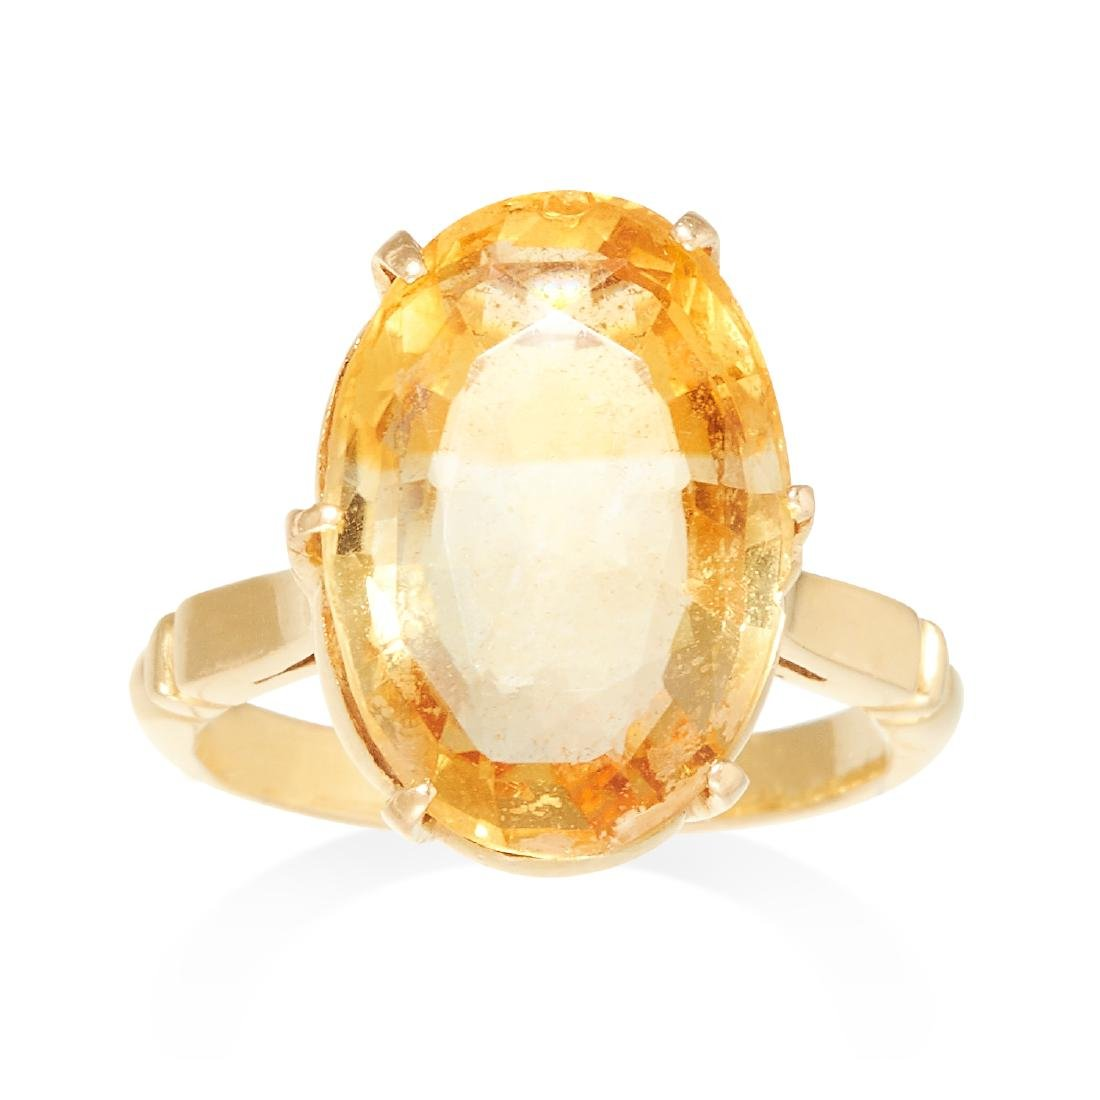 A CITRINE DRESS RING in yellow gold, set with a large